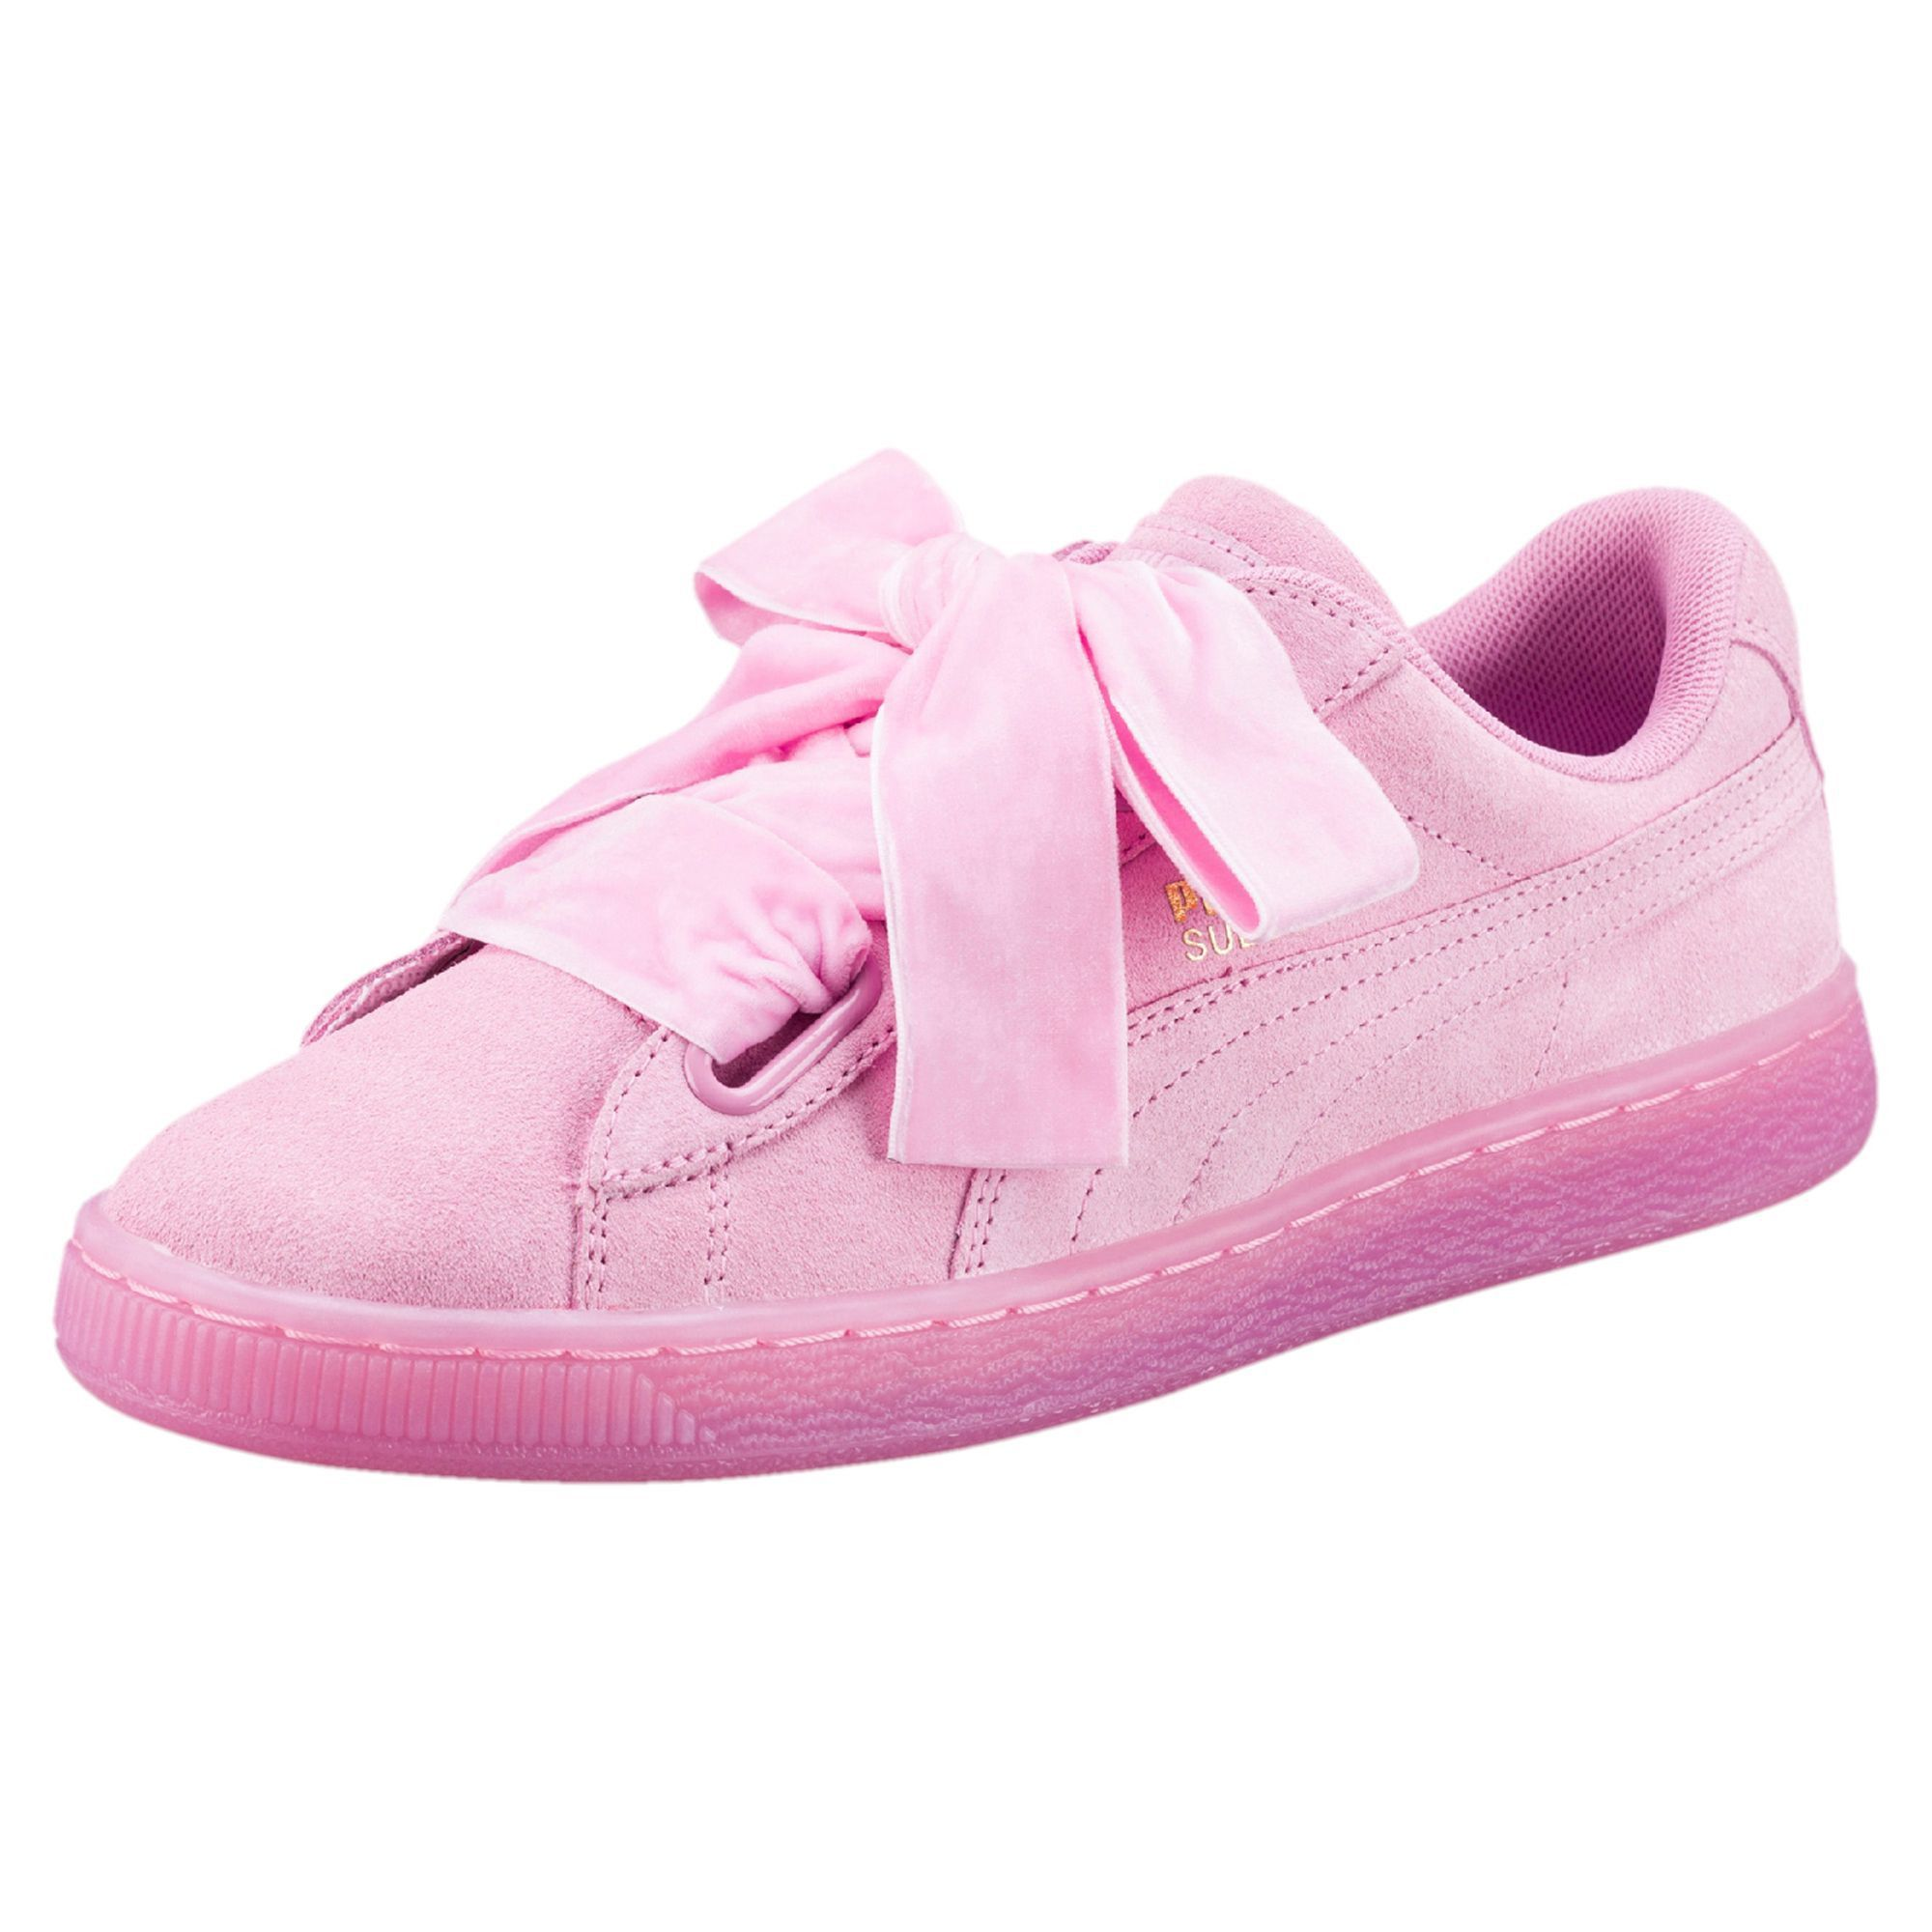 Discount Puma Prism Pink Suede Heart Suede Trainers for Women Sale